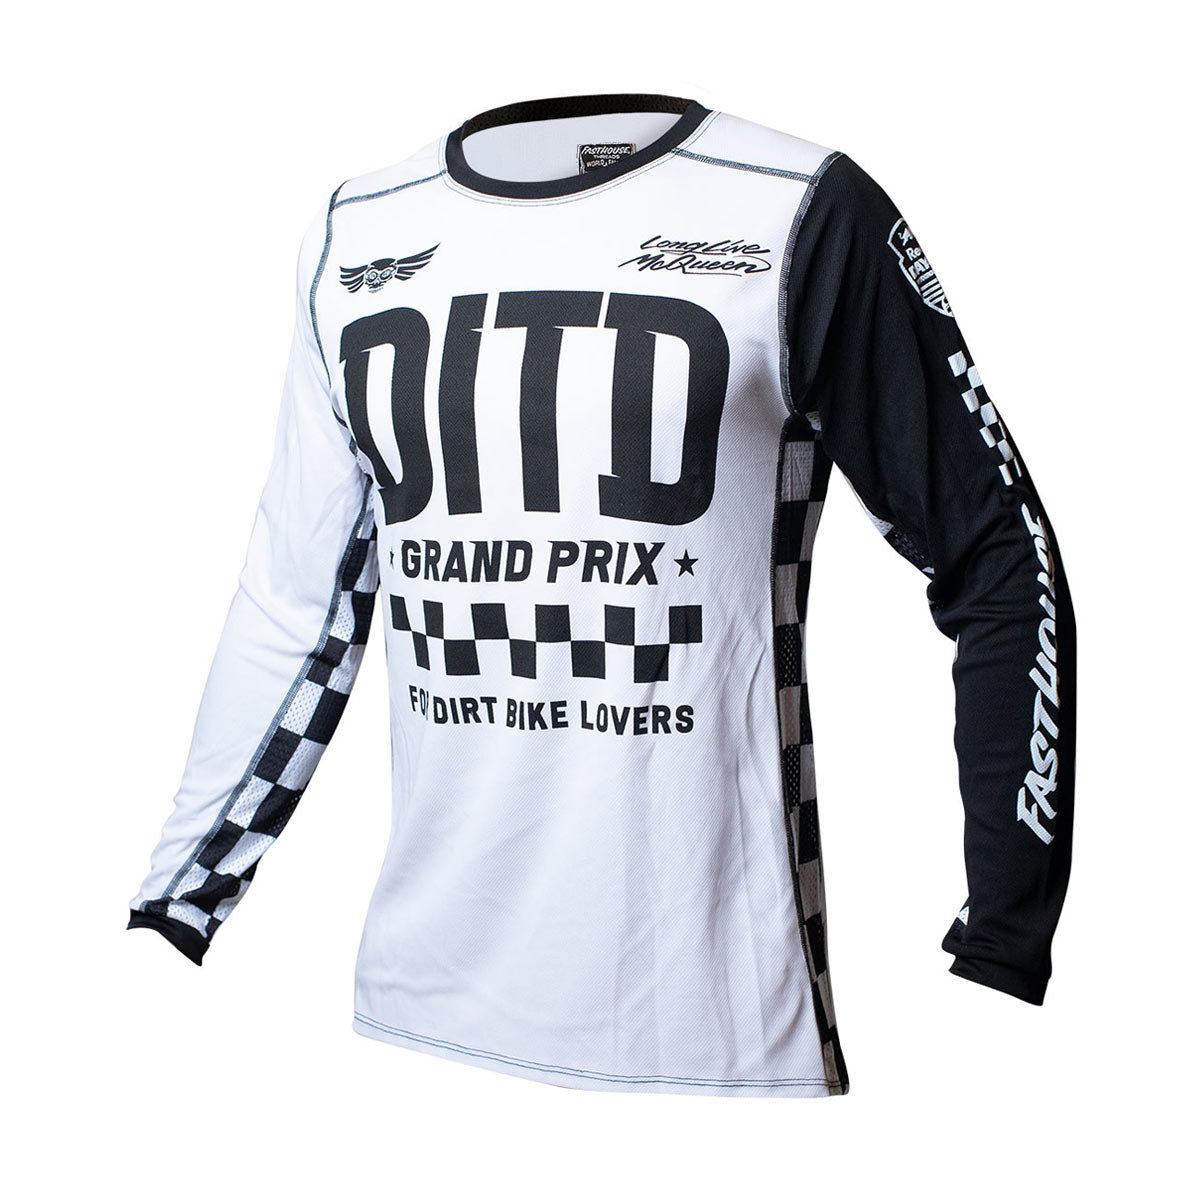 Day in the Dirt 23 Grand Prix Youth Jersey